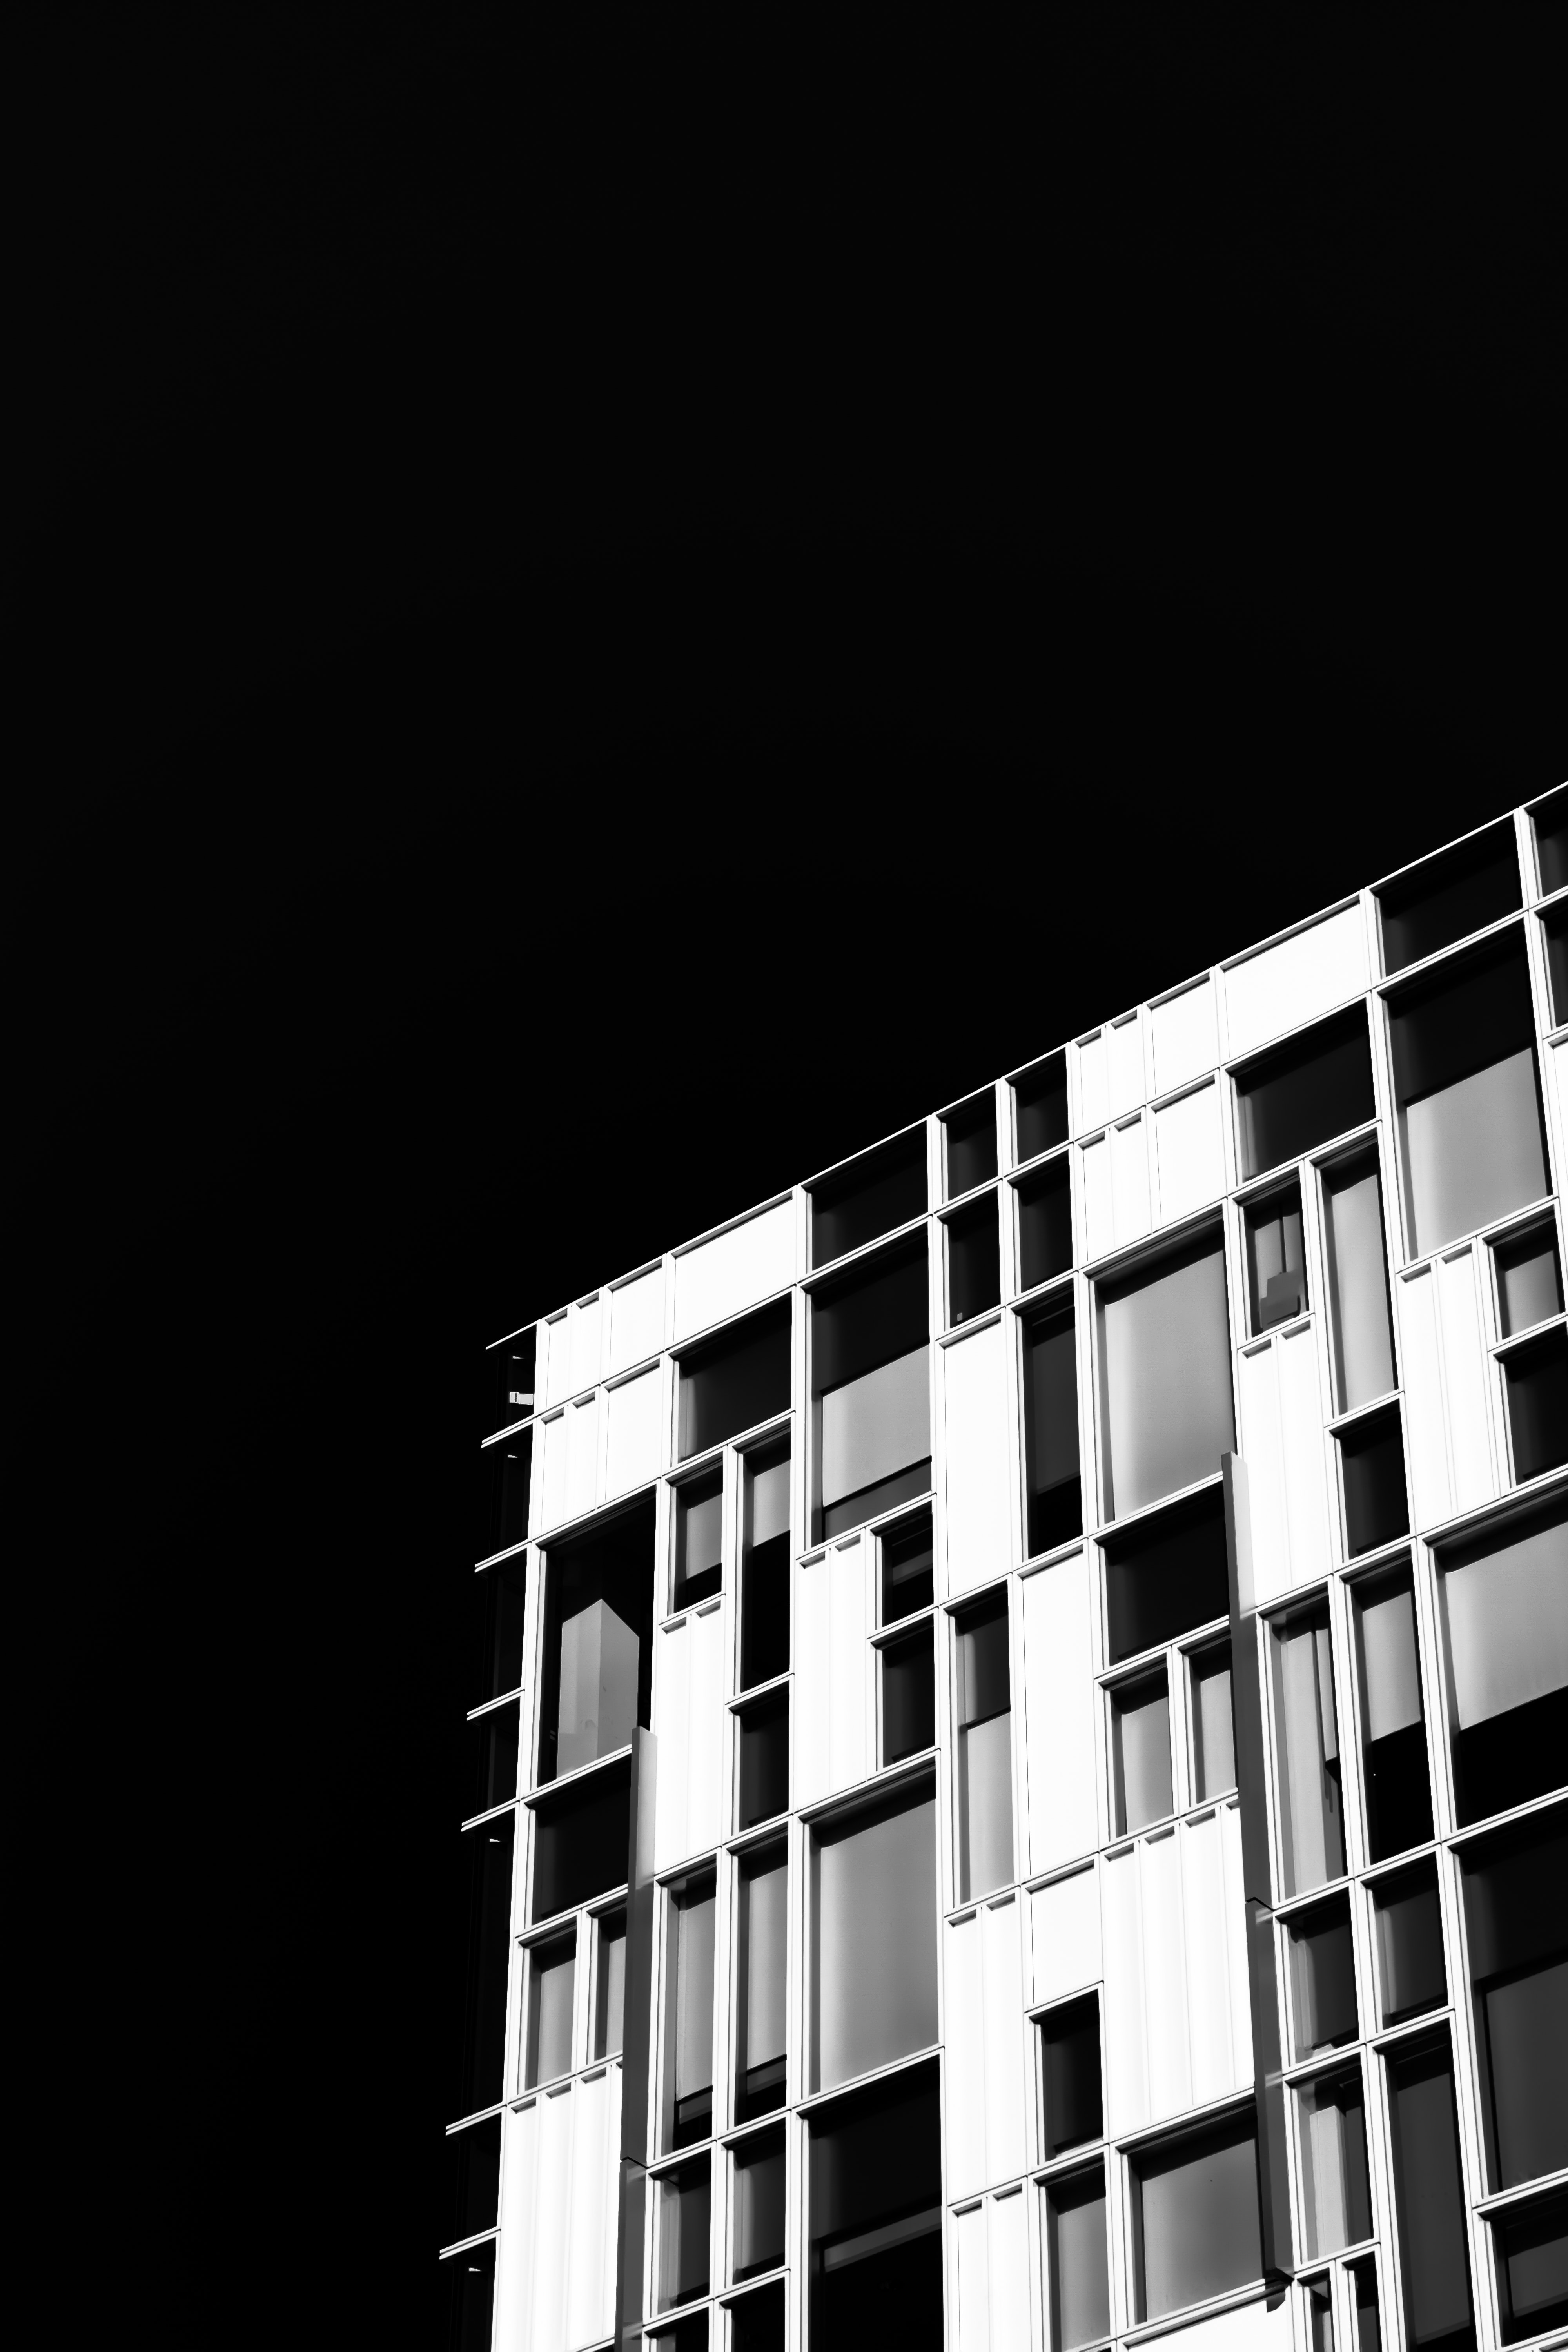 A black-and-white shot of a facade with rectangular windows in various sizes